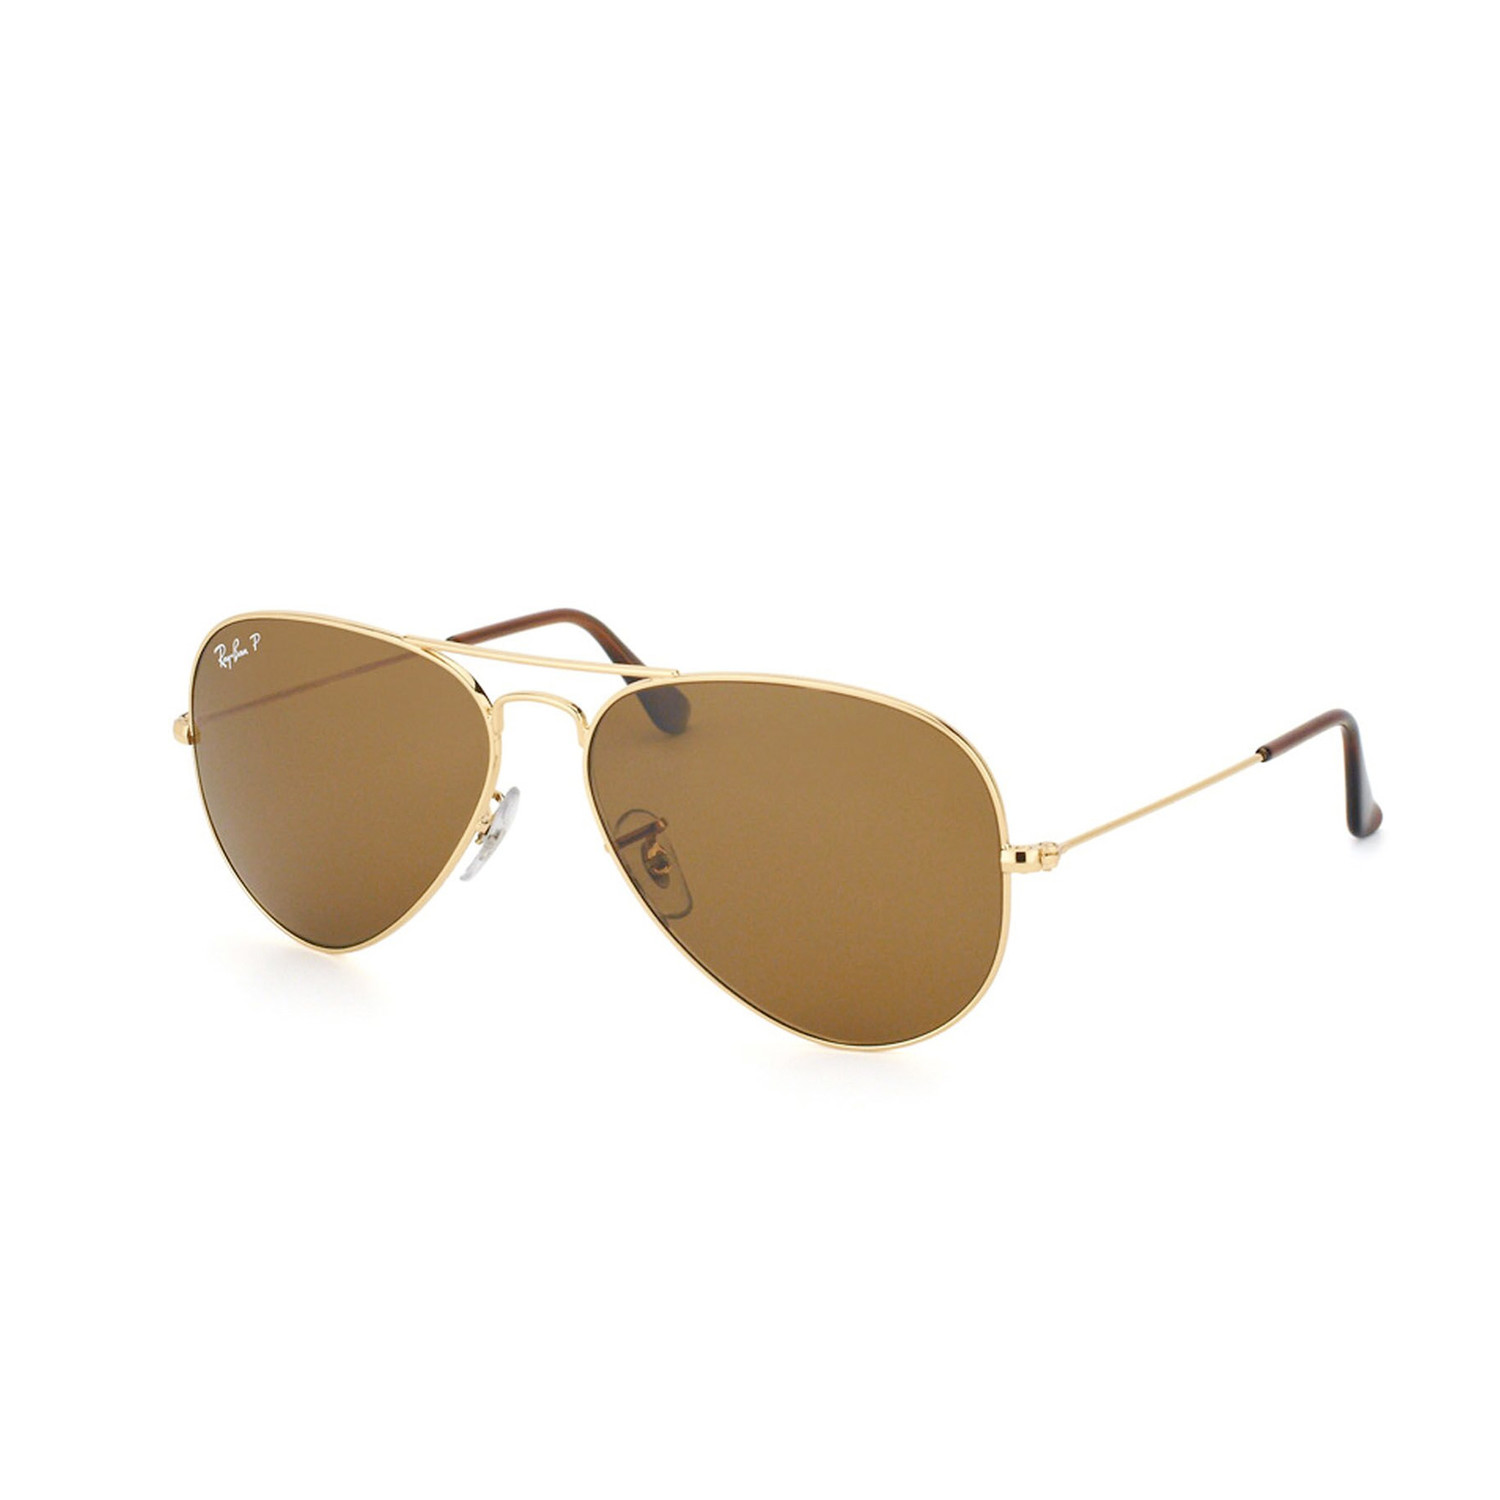 65b114b2a6 Large Metal Aviator Sunglasses    Gold + Brown    Polarized - 24 ...